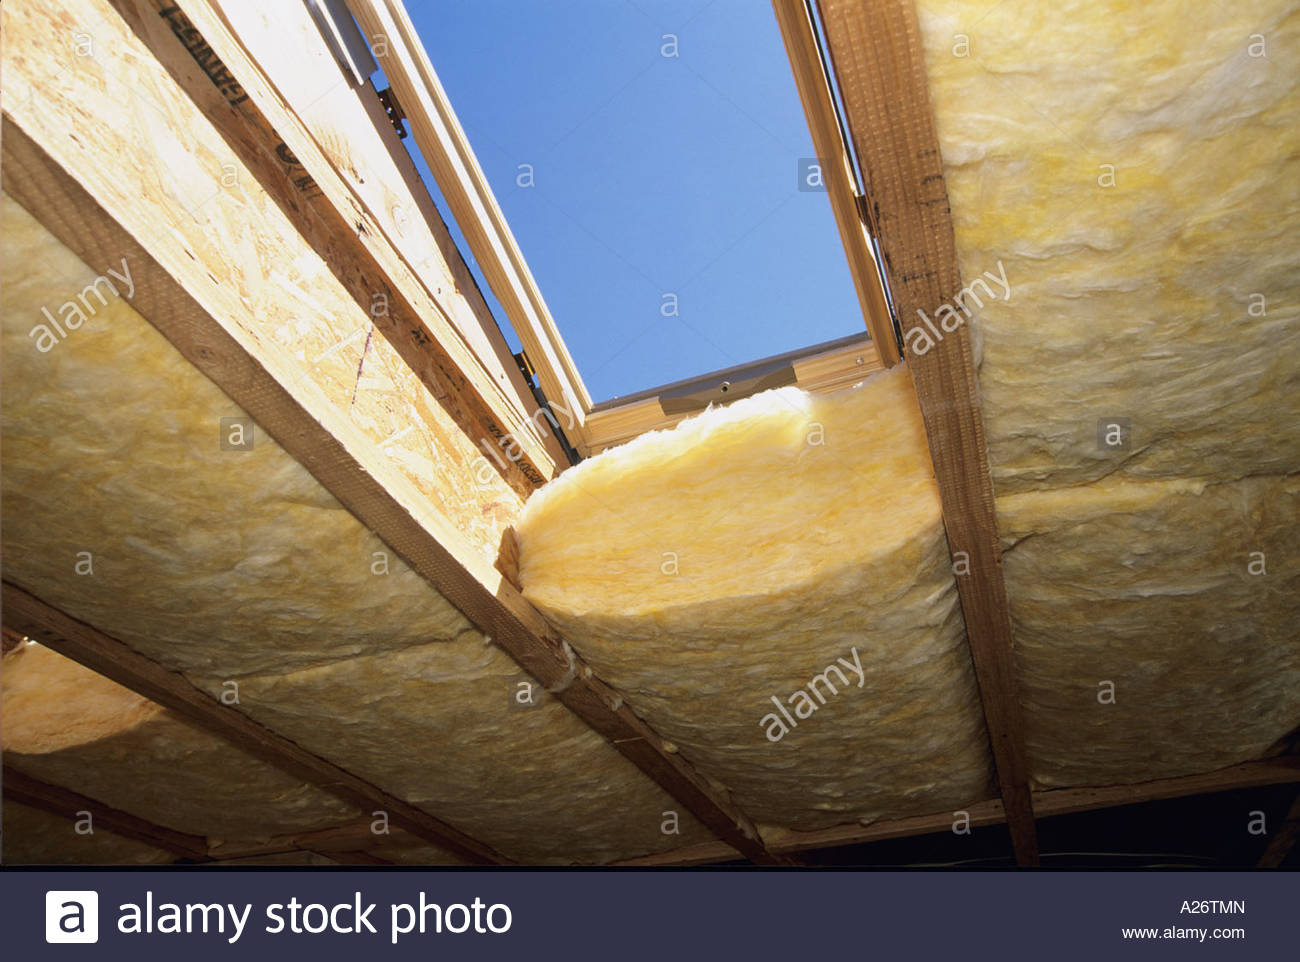 R38 Fiberglass Insulation being installed roof in new loft style home under construction Stock Foto